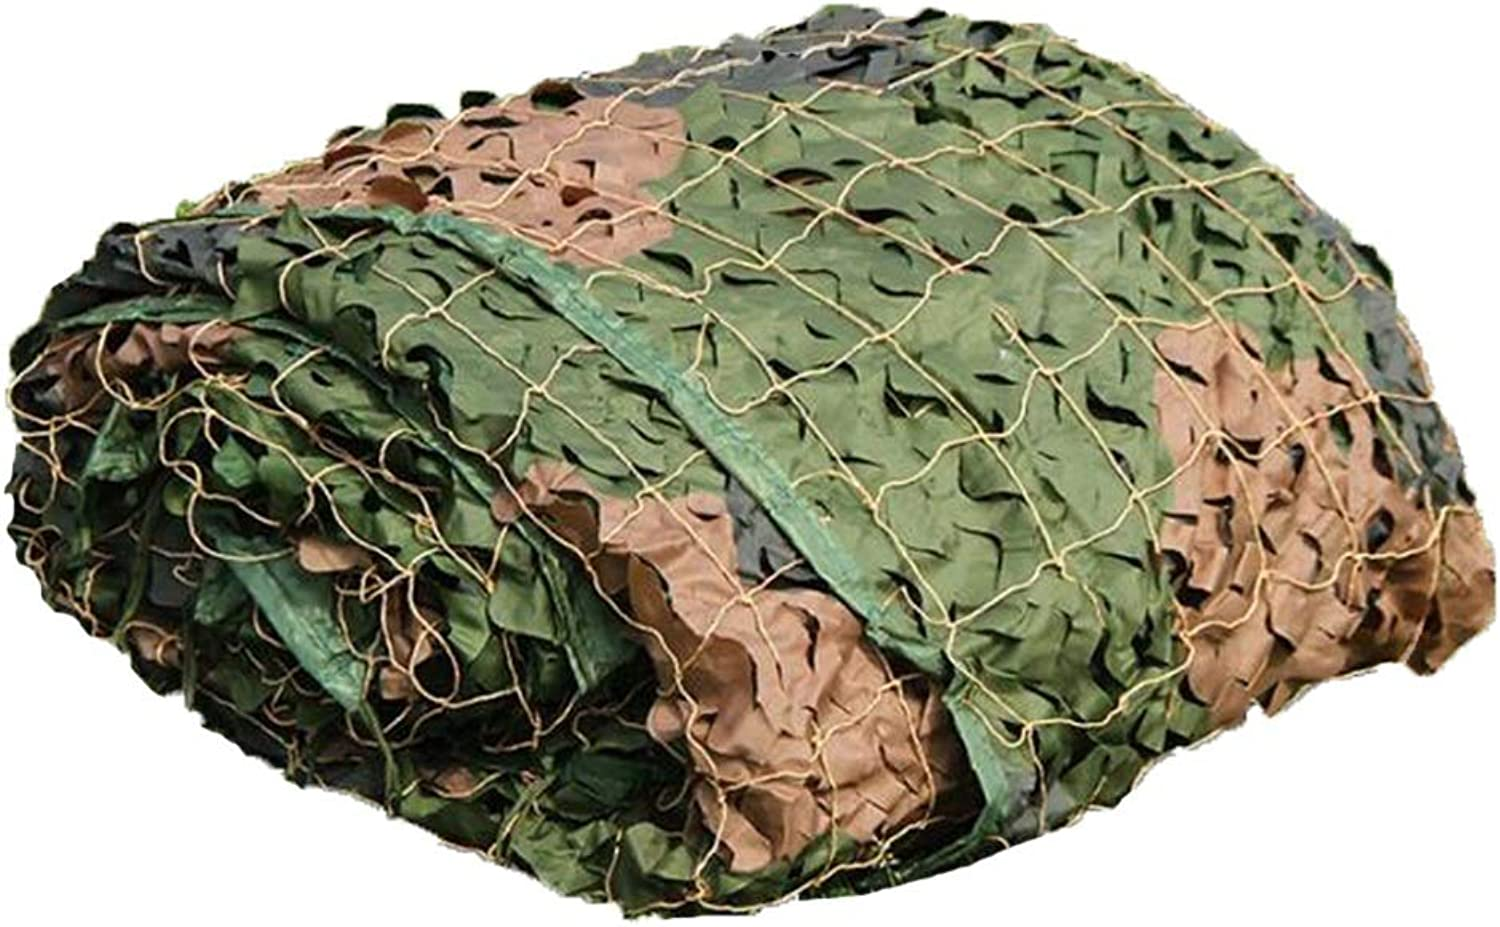 XEWNEG Jungle Camouflage Net, Lightweight Waterproof Oxford Cloth  Suitable for Outdoor Use Military Camping Hunting Shooting Sunscreen Net(6×8cm)